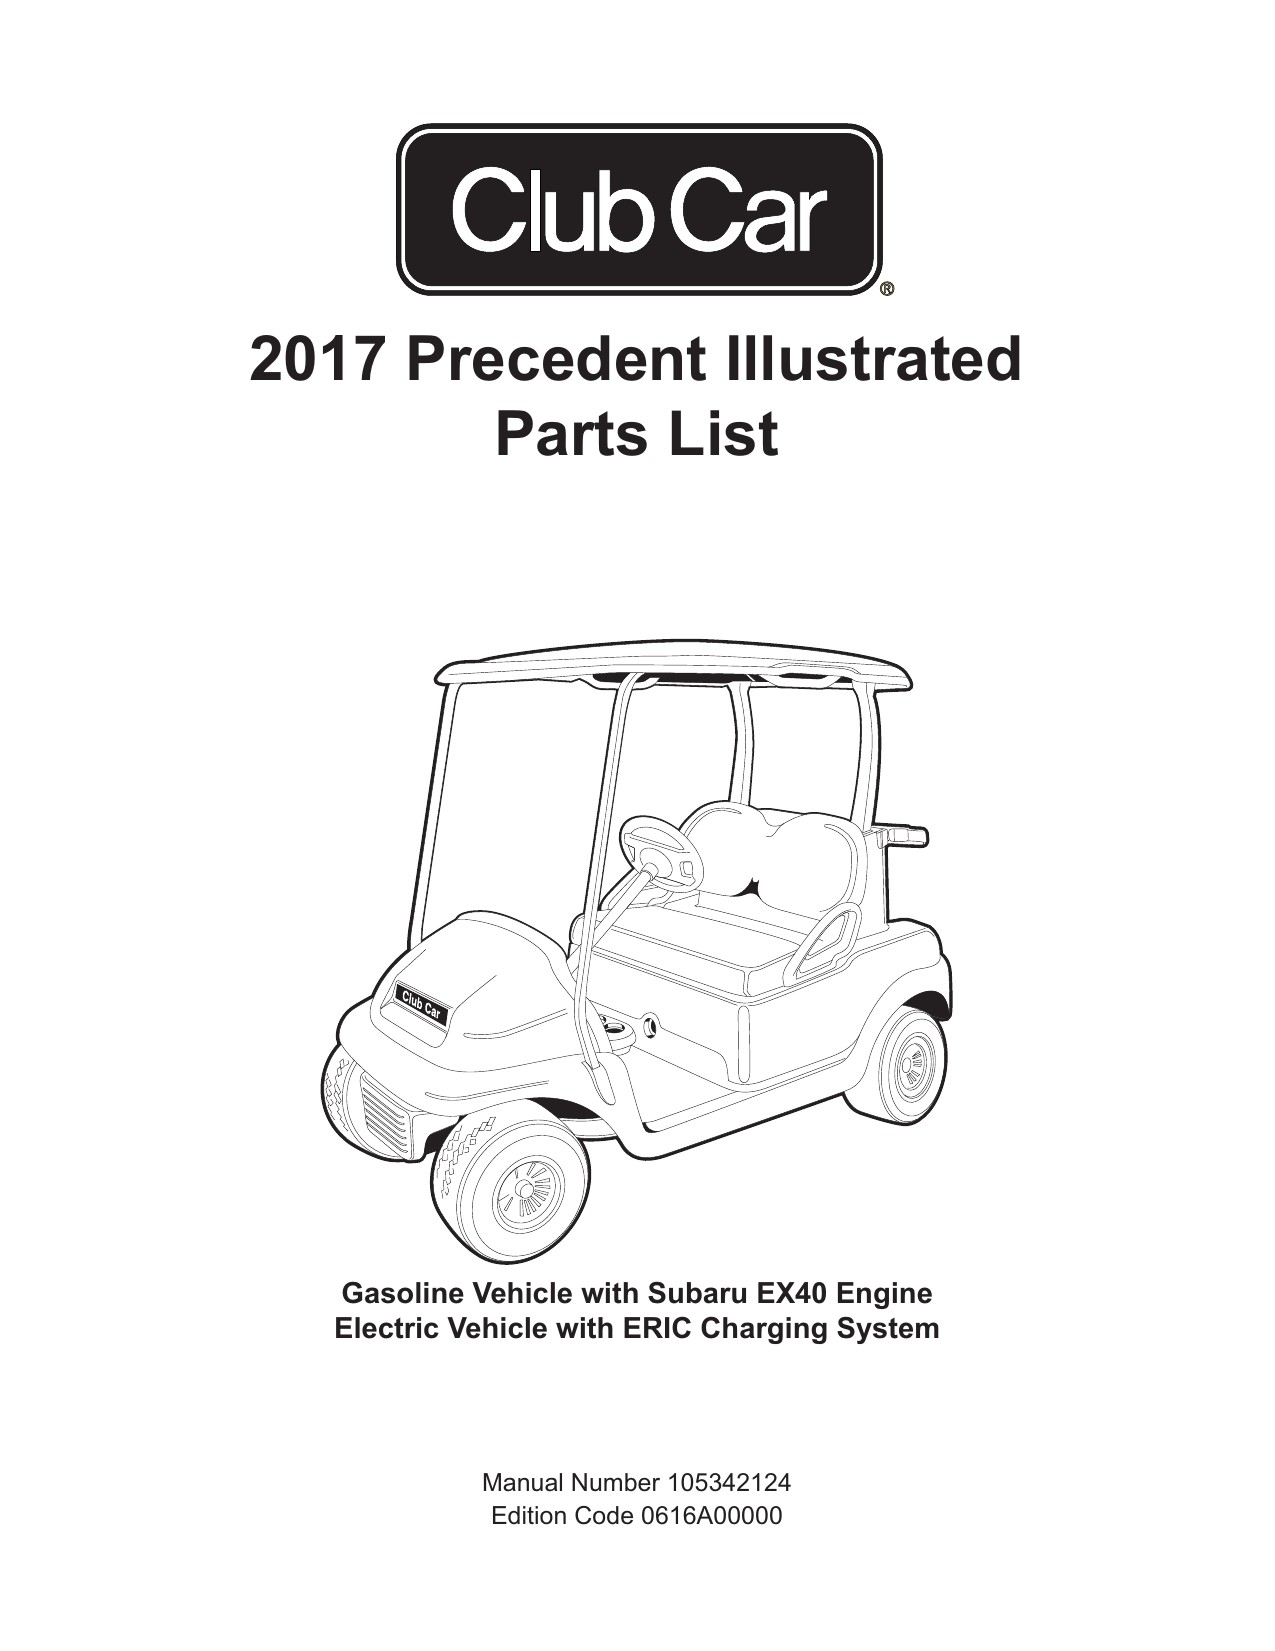 Adjusting the forward and Reverse Switch On Club Car 2017 Precedent Illustrated Parts List Of Adjusting the forward and Reverse Switch On Club Car